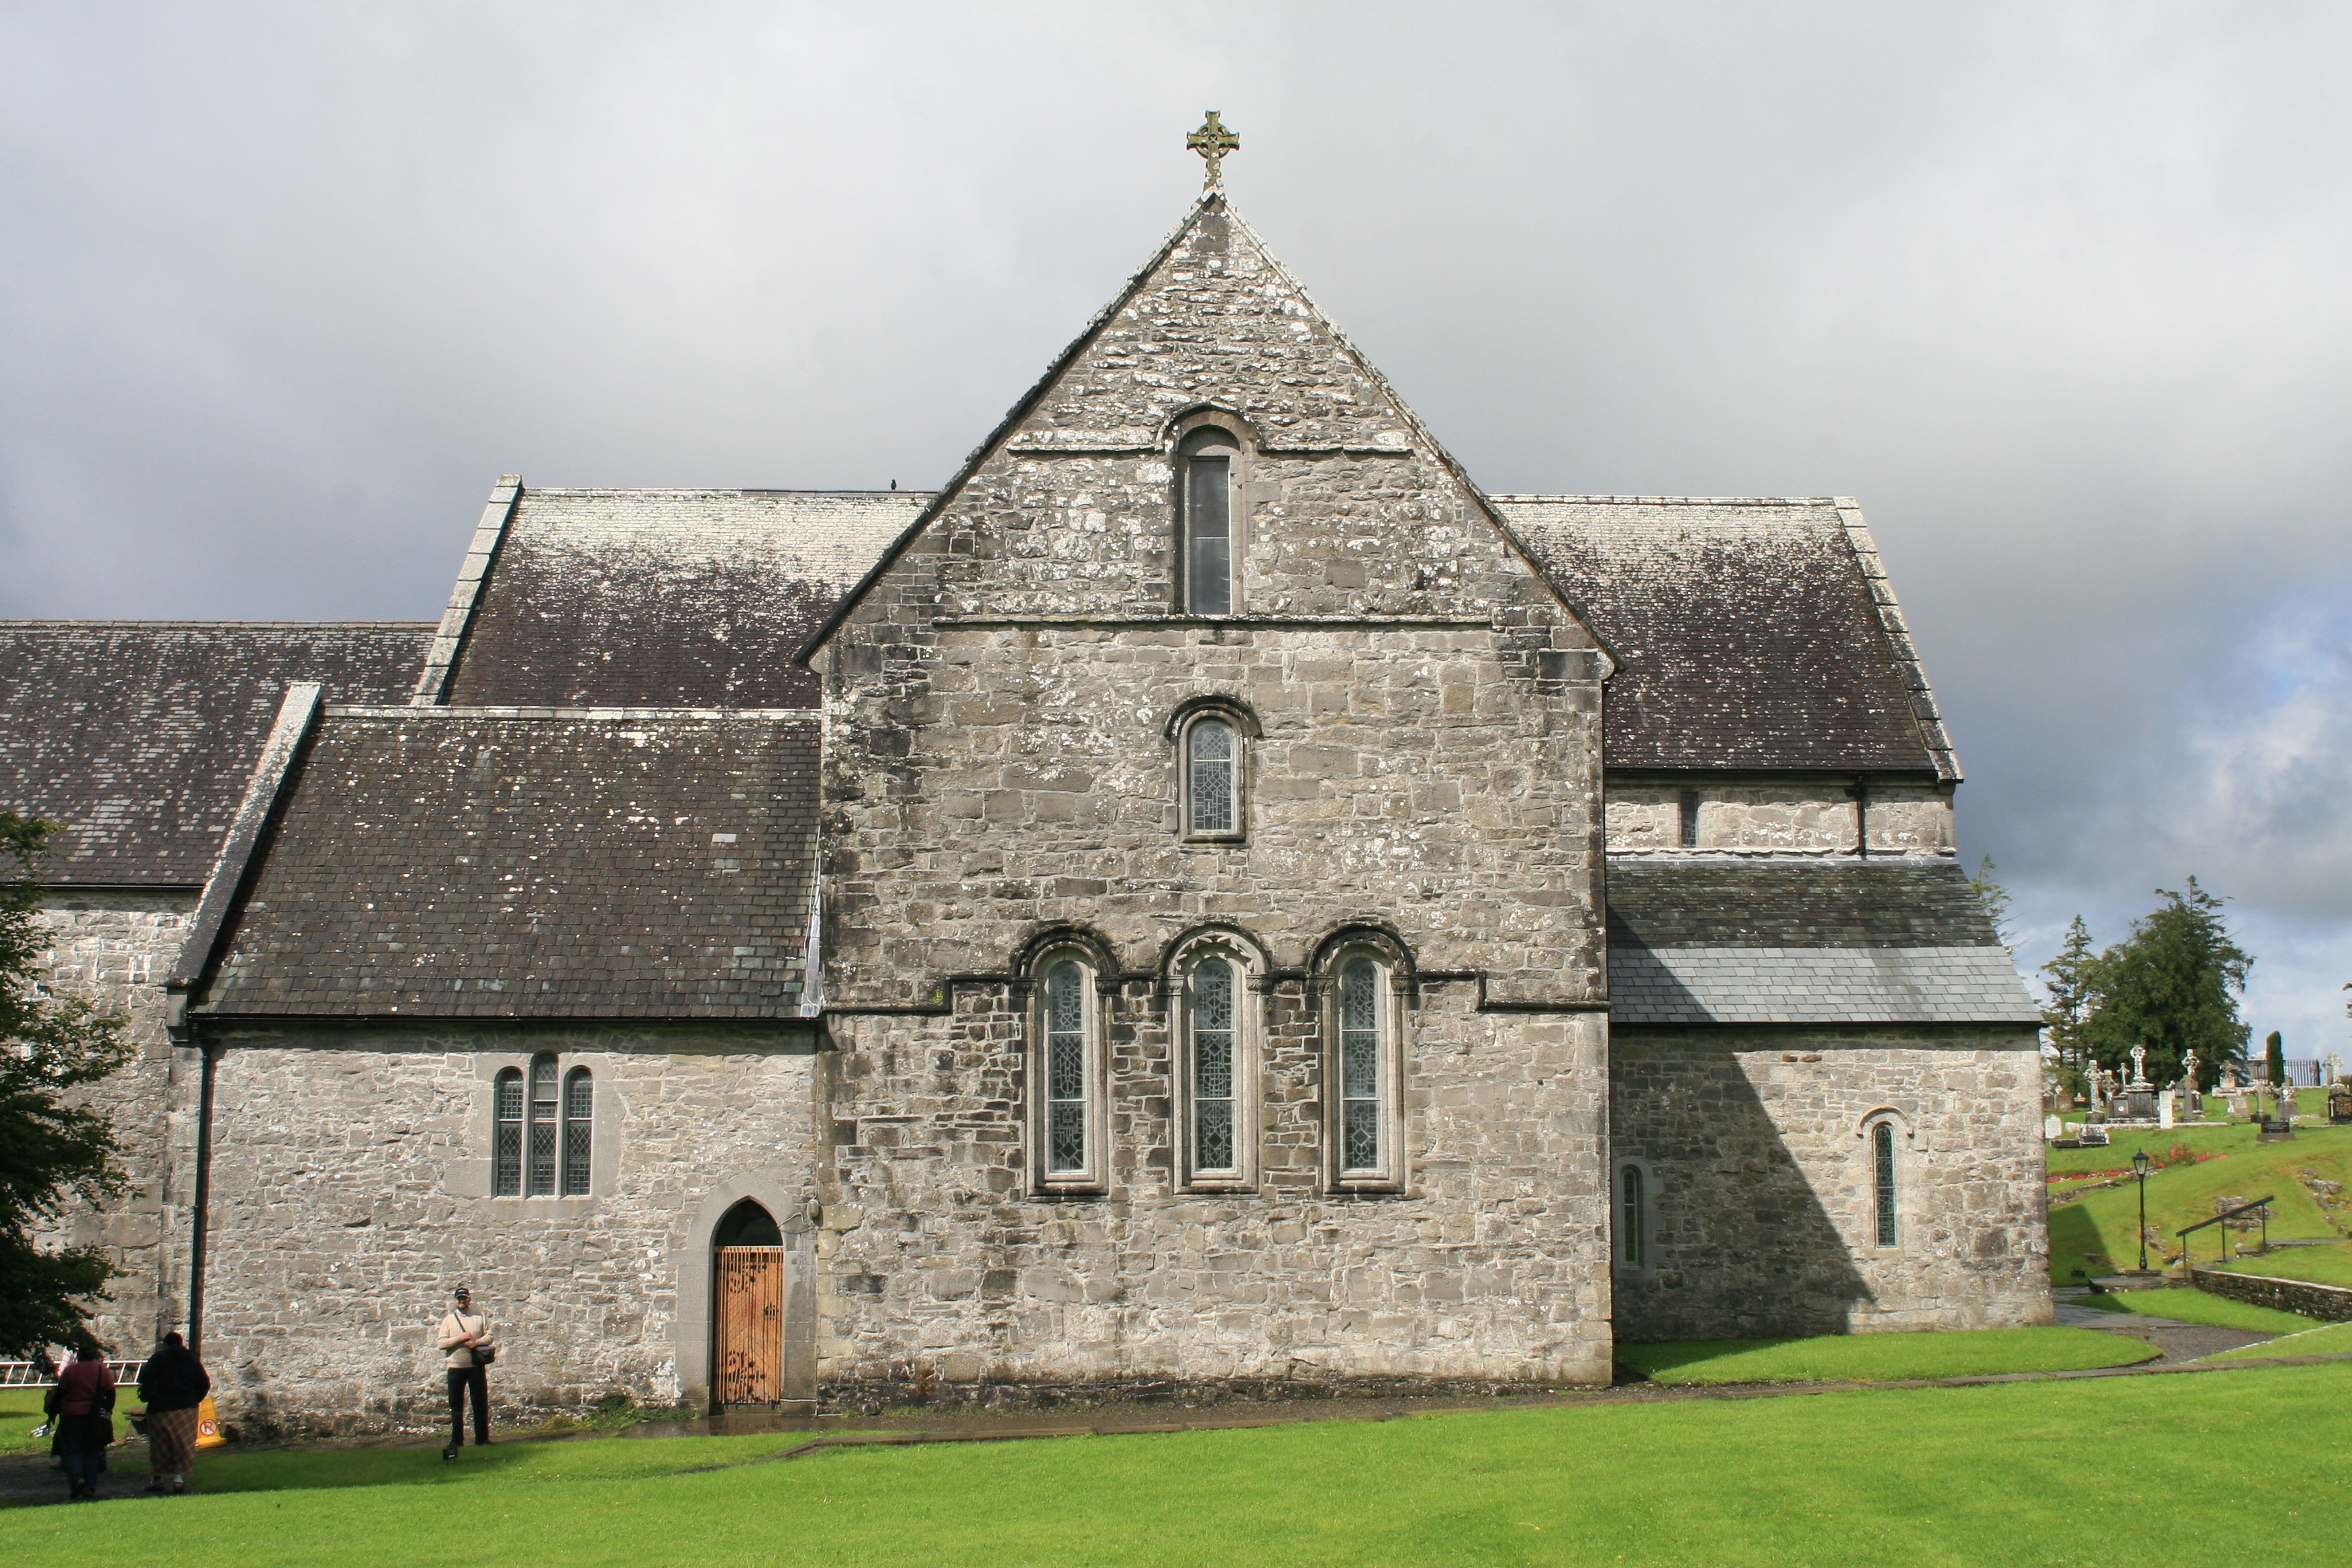 Ballintubber Abbey, An Augustinian priory founded in the 13th century, suppressed in 1603 and burned in 1653; but continuallly re-occupied and used for Catholic services, and re-roofed in the 20th century